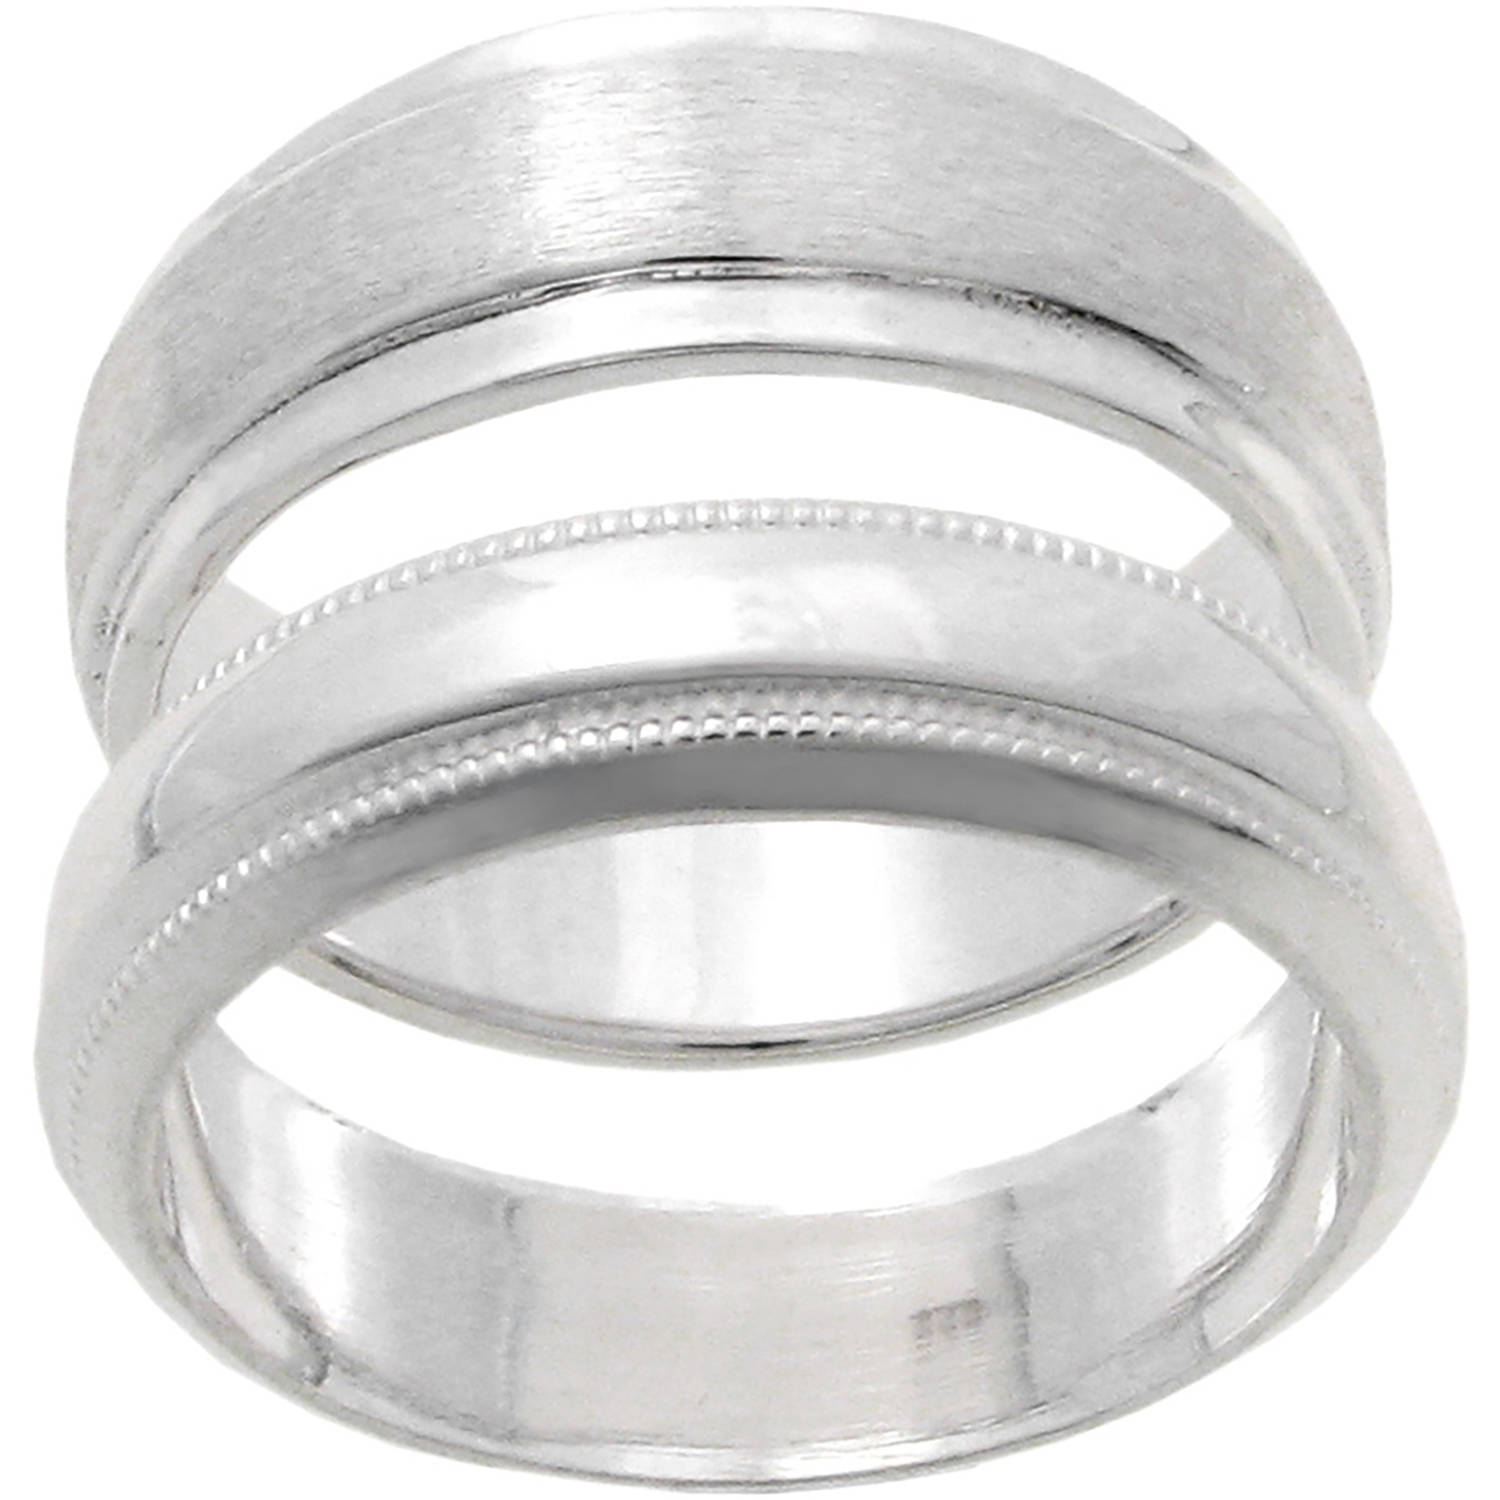 Brinley Co. Women's Sterling Silver Satin Finish Ring Set, 2 Bands